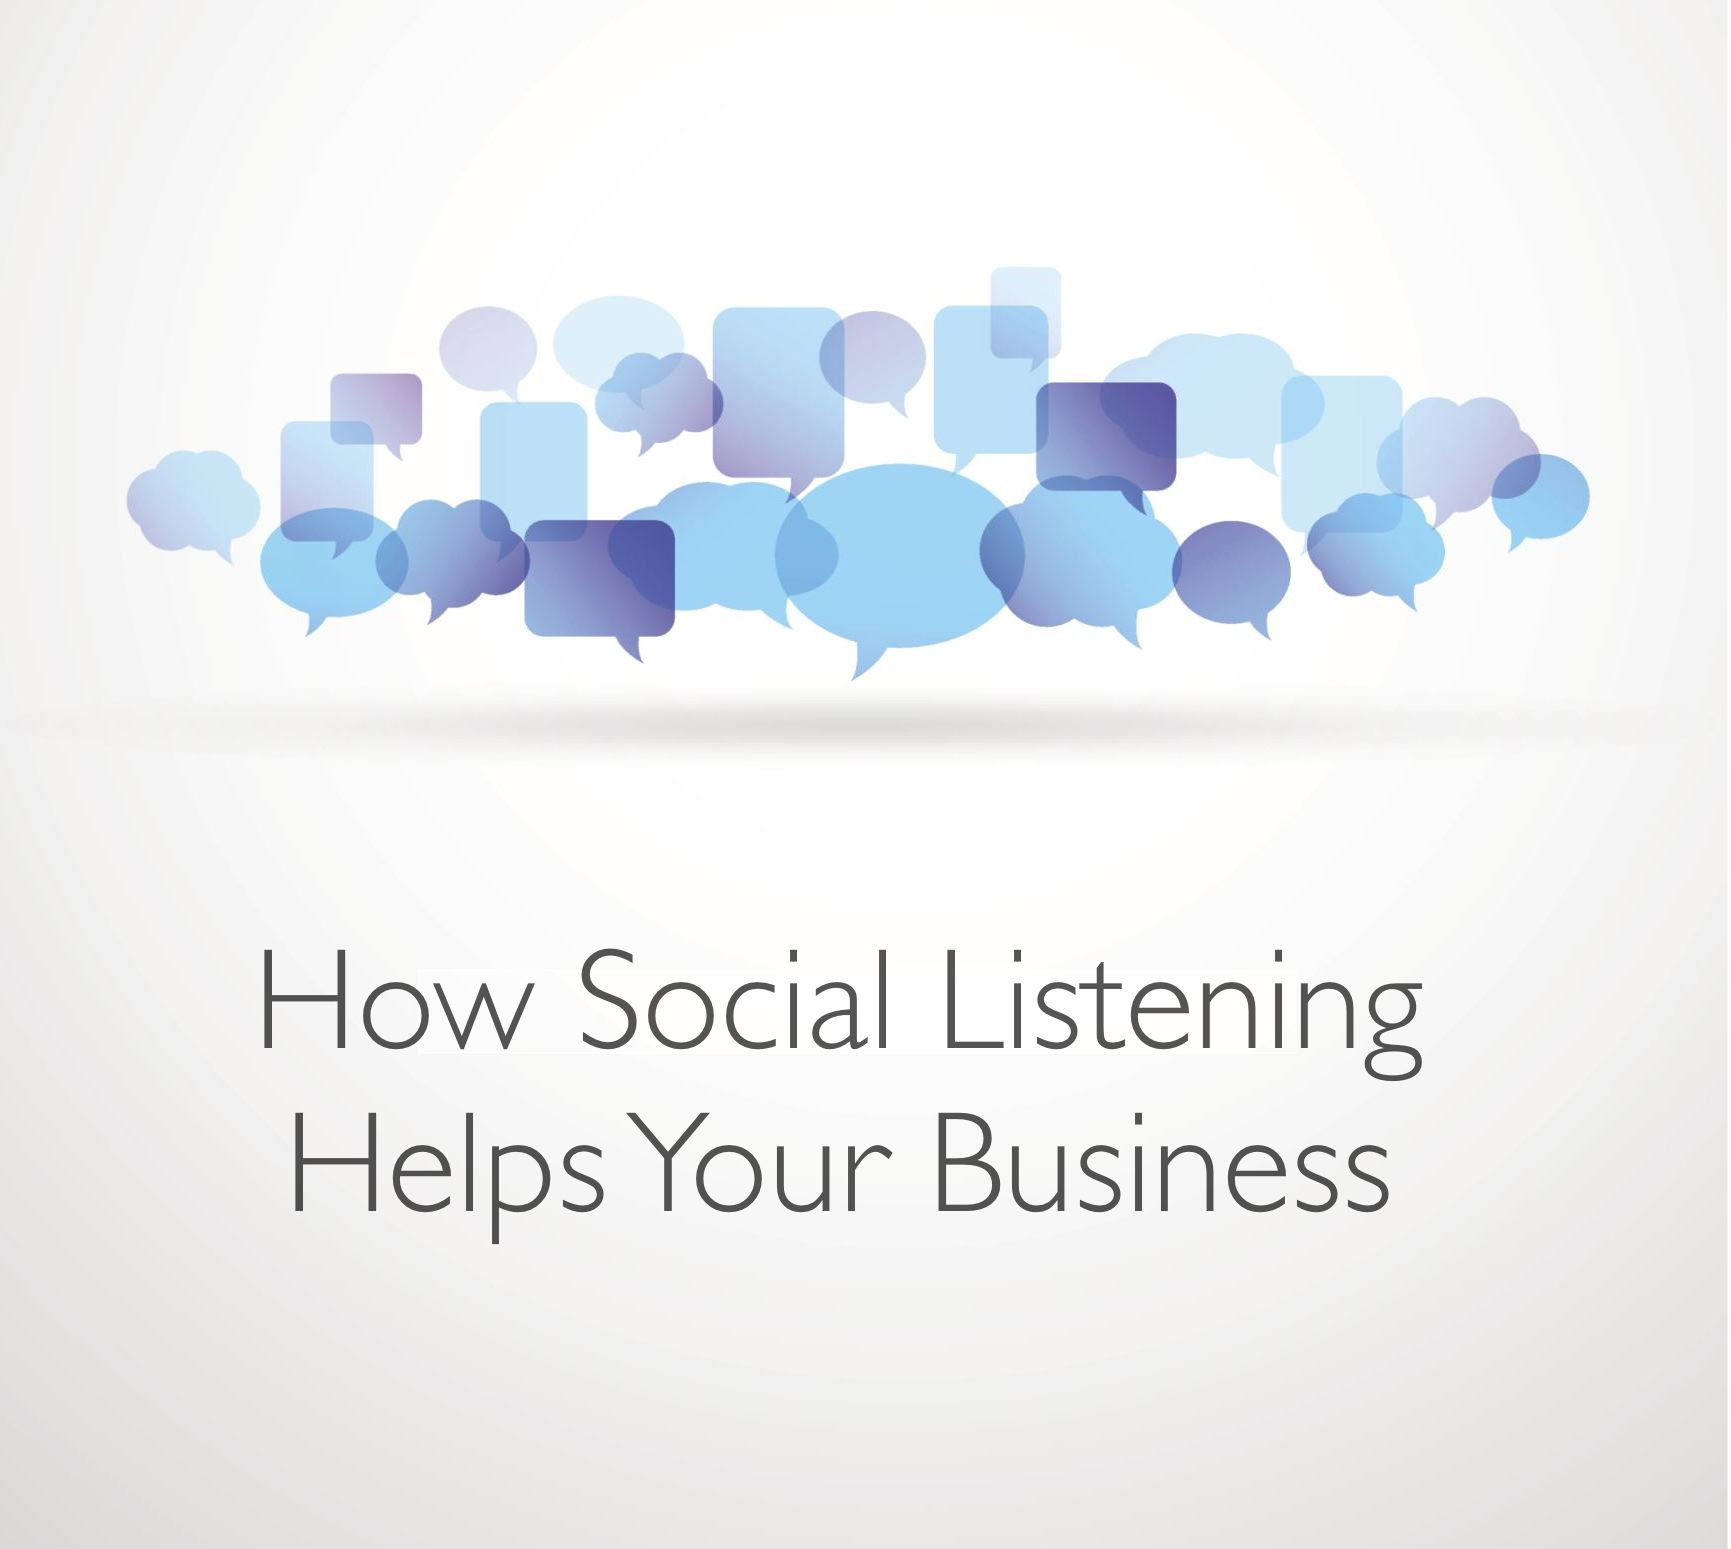 How Social Listening Helps Your Business